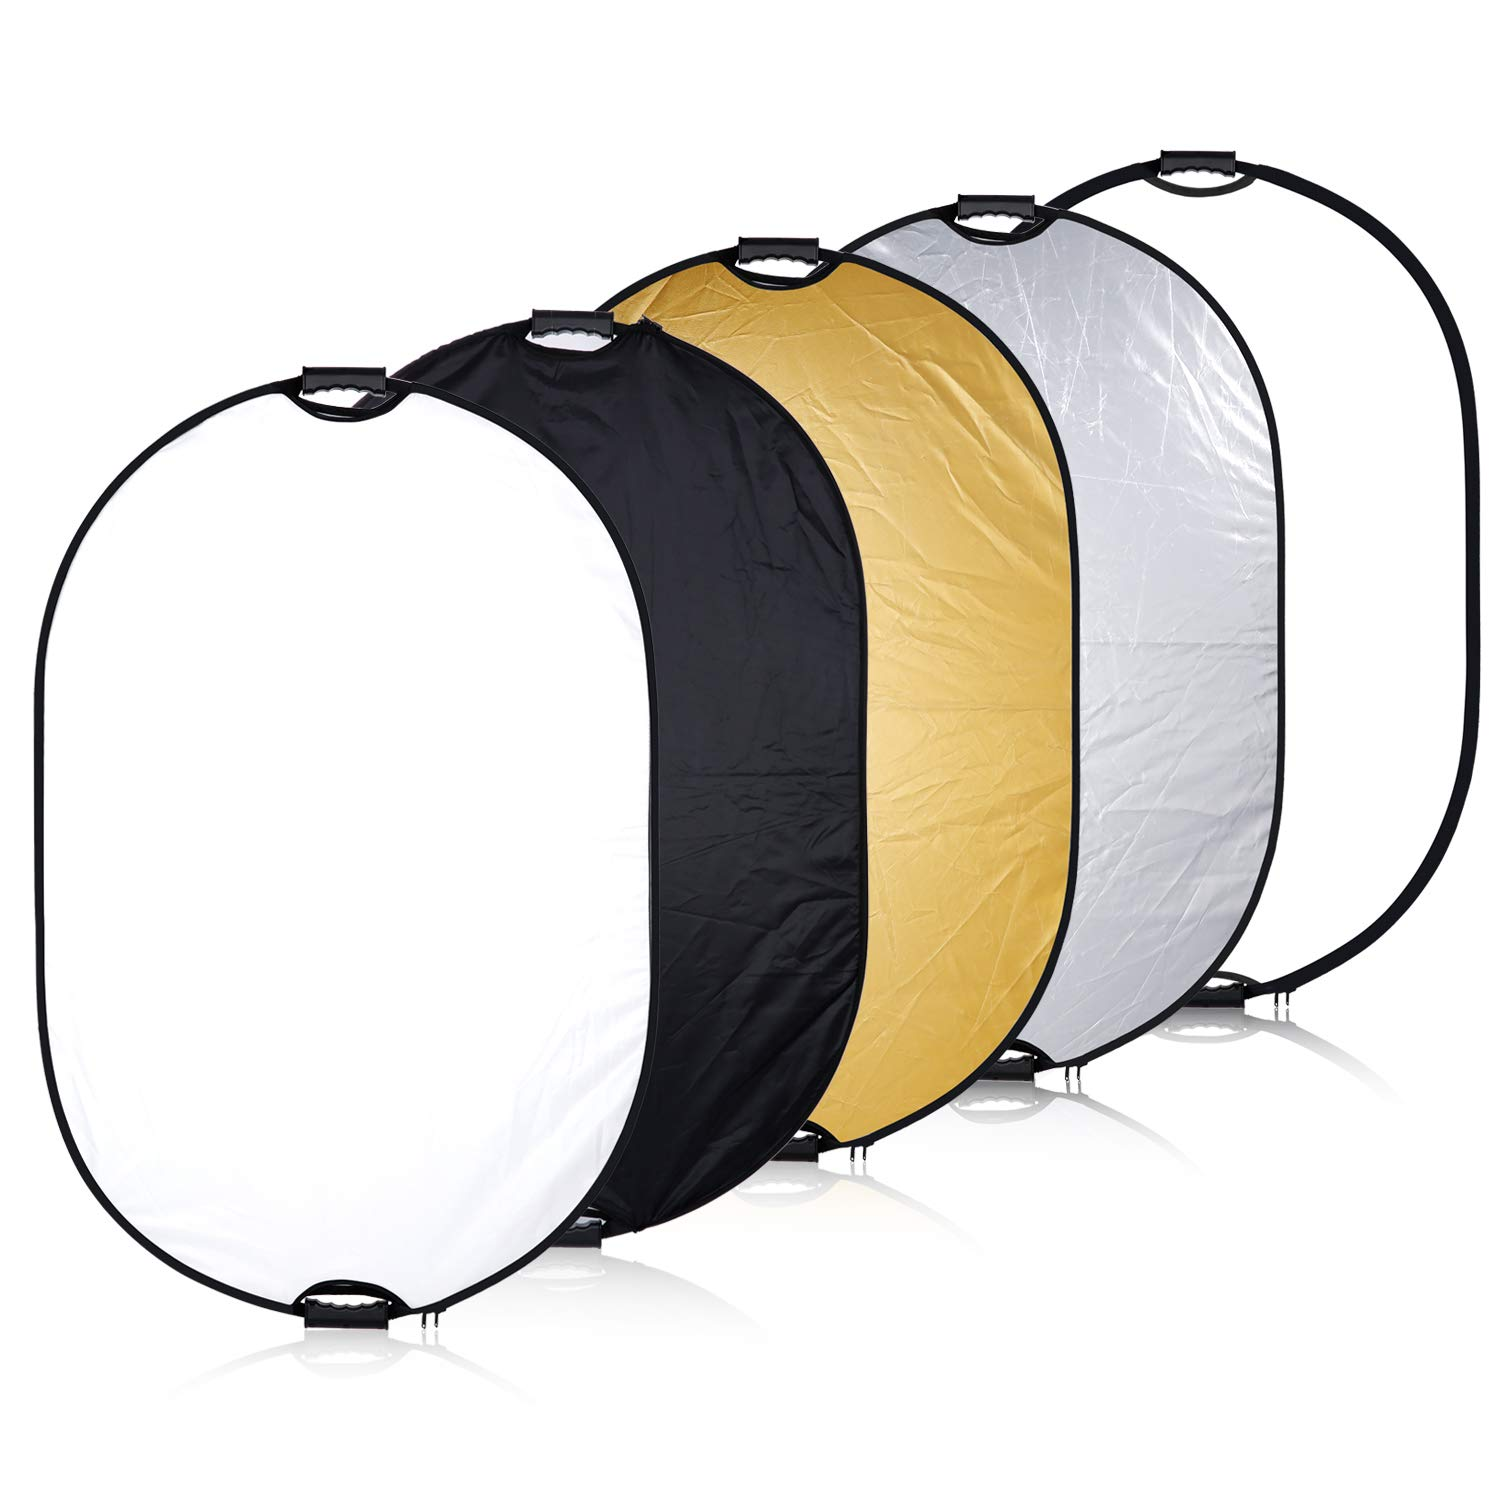 Neewer 5 in 1 Portable Multi Reflector Disk Camera Lighting Reflector Panel 35.4x47.2 inches/90x120 Centimeters with Handle Grip and Carrying Case for Photpgraphy, Gold Silver White Black Translucent by Neewer